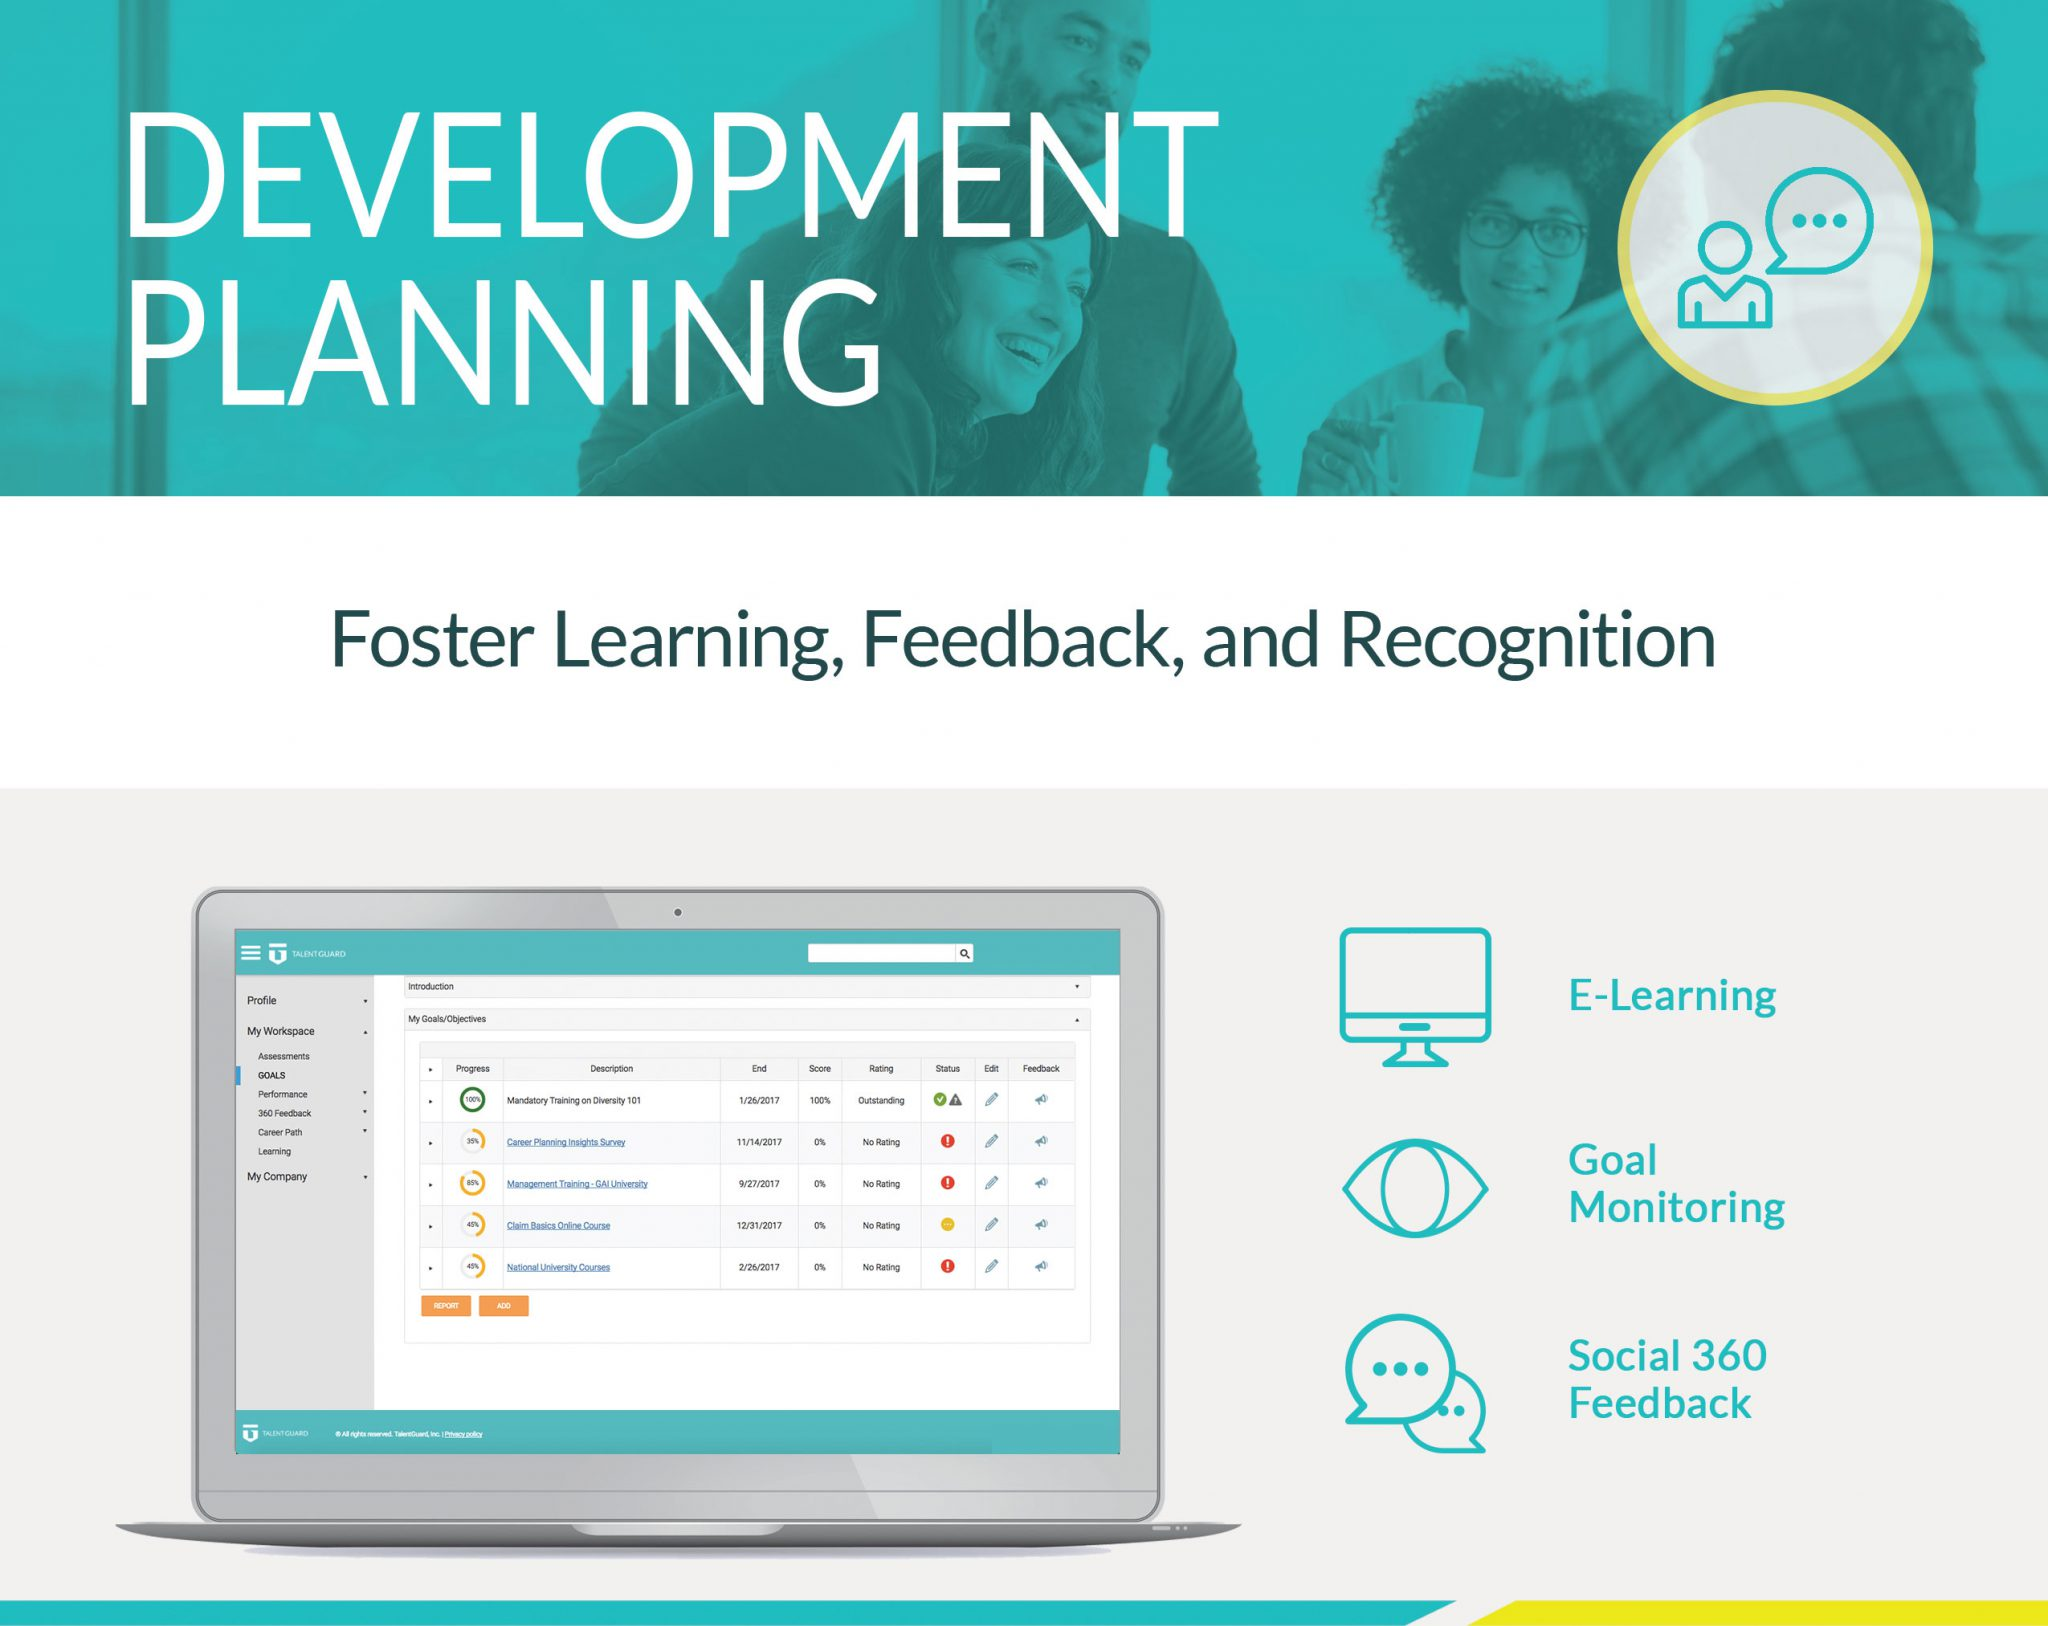 Development Planning Collateral